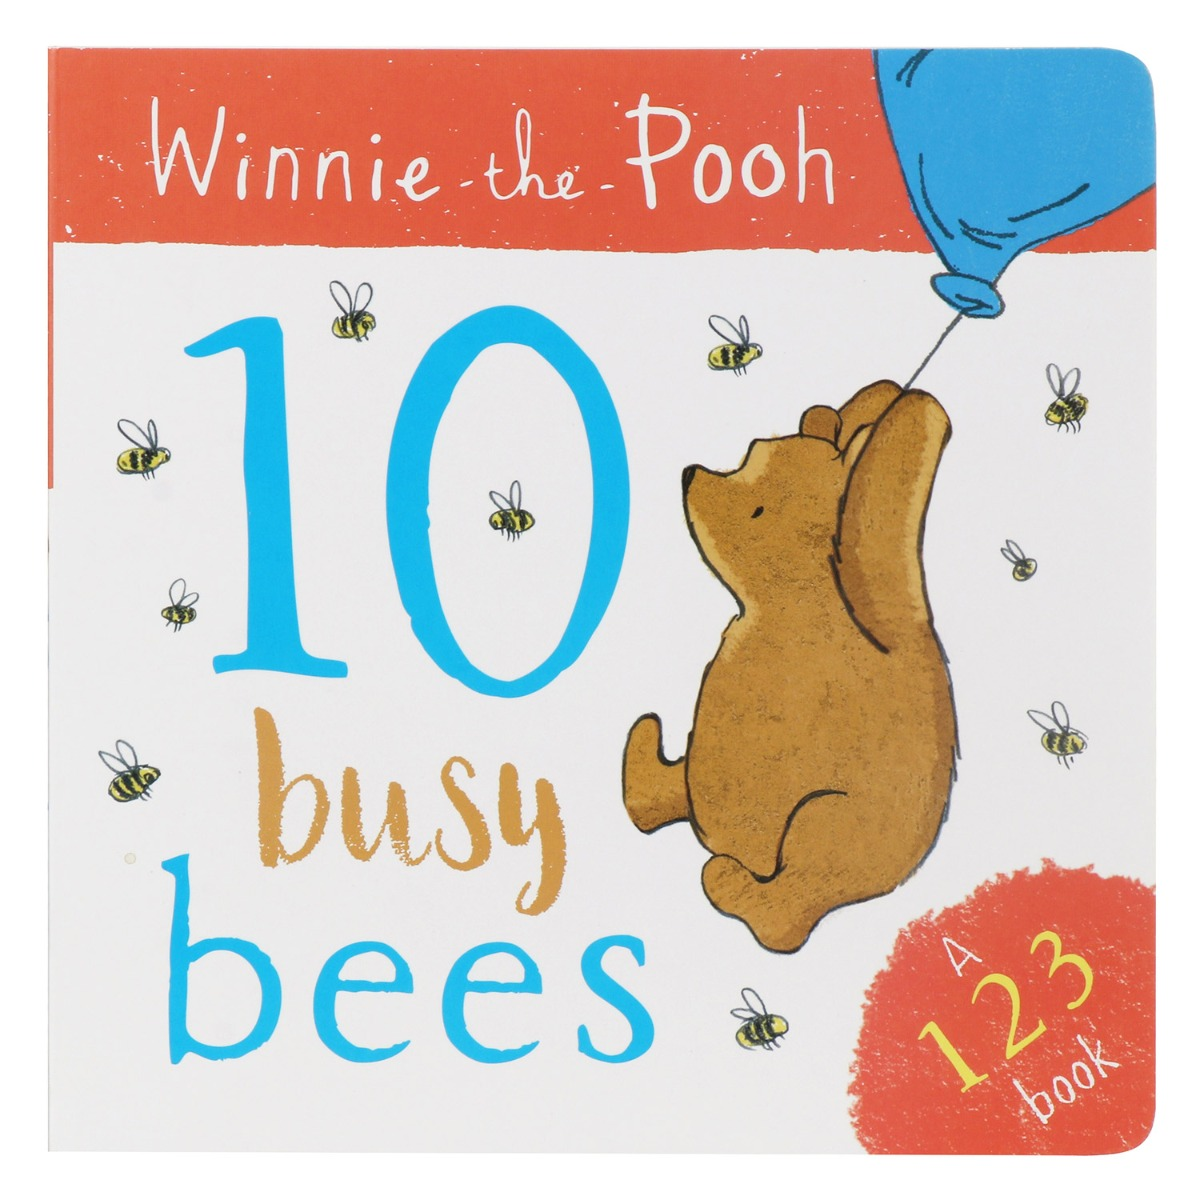 Winnie The Pooh 10 Busy Bees (123) Board Book